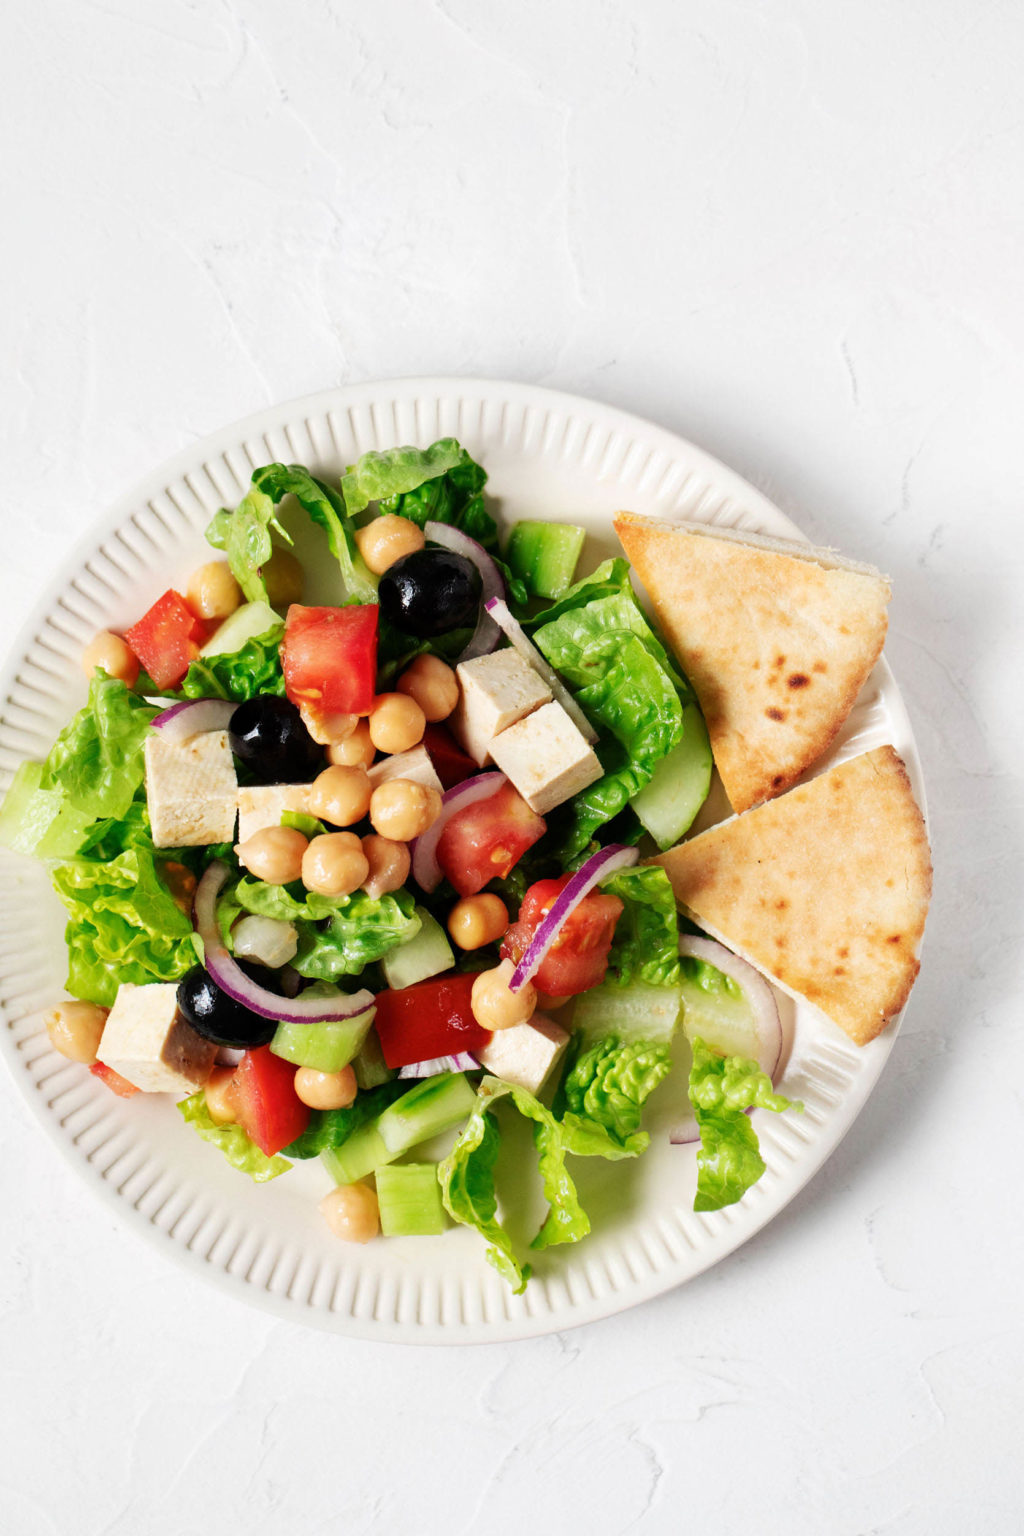 An overhead image of a crisp green salad with romaine lettuce, tomatoes, olives, red onions, and pita wedges. It's served on a white, rimmed plate.